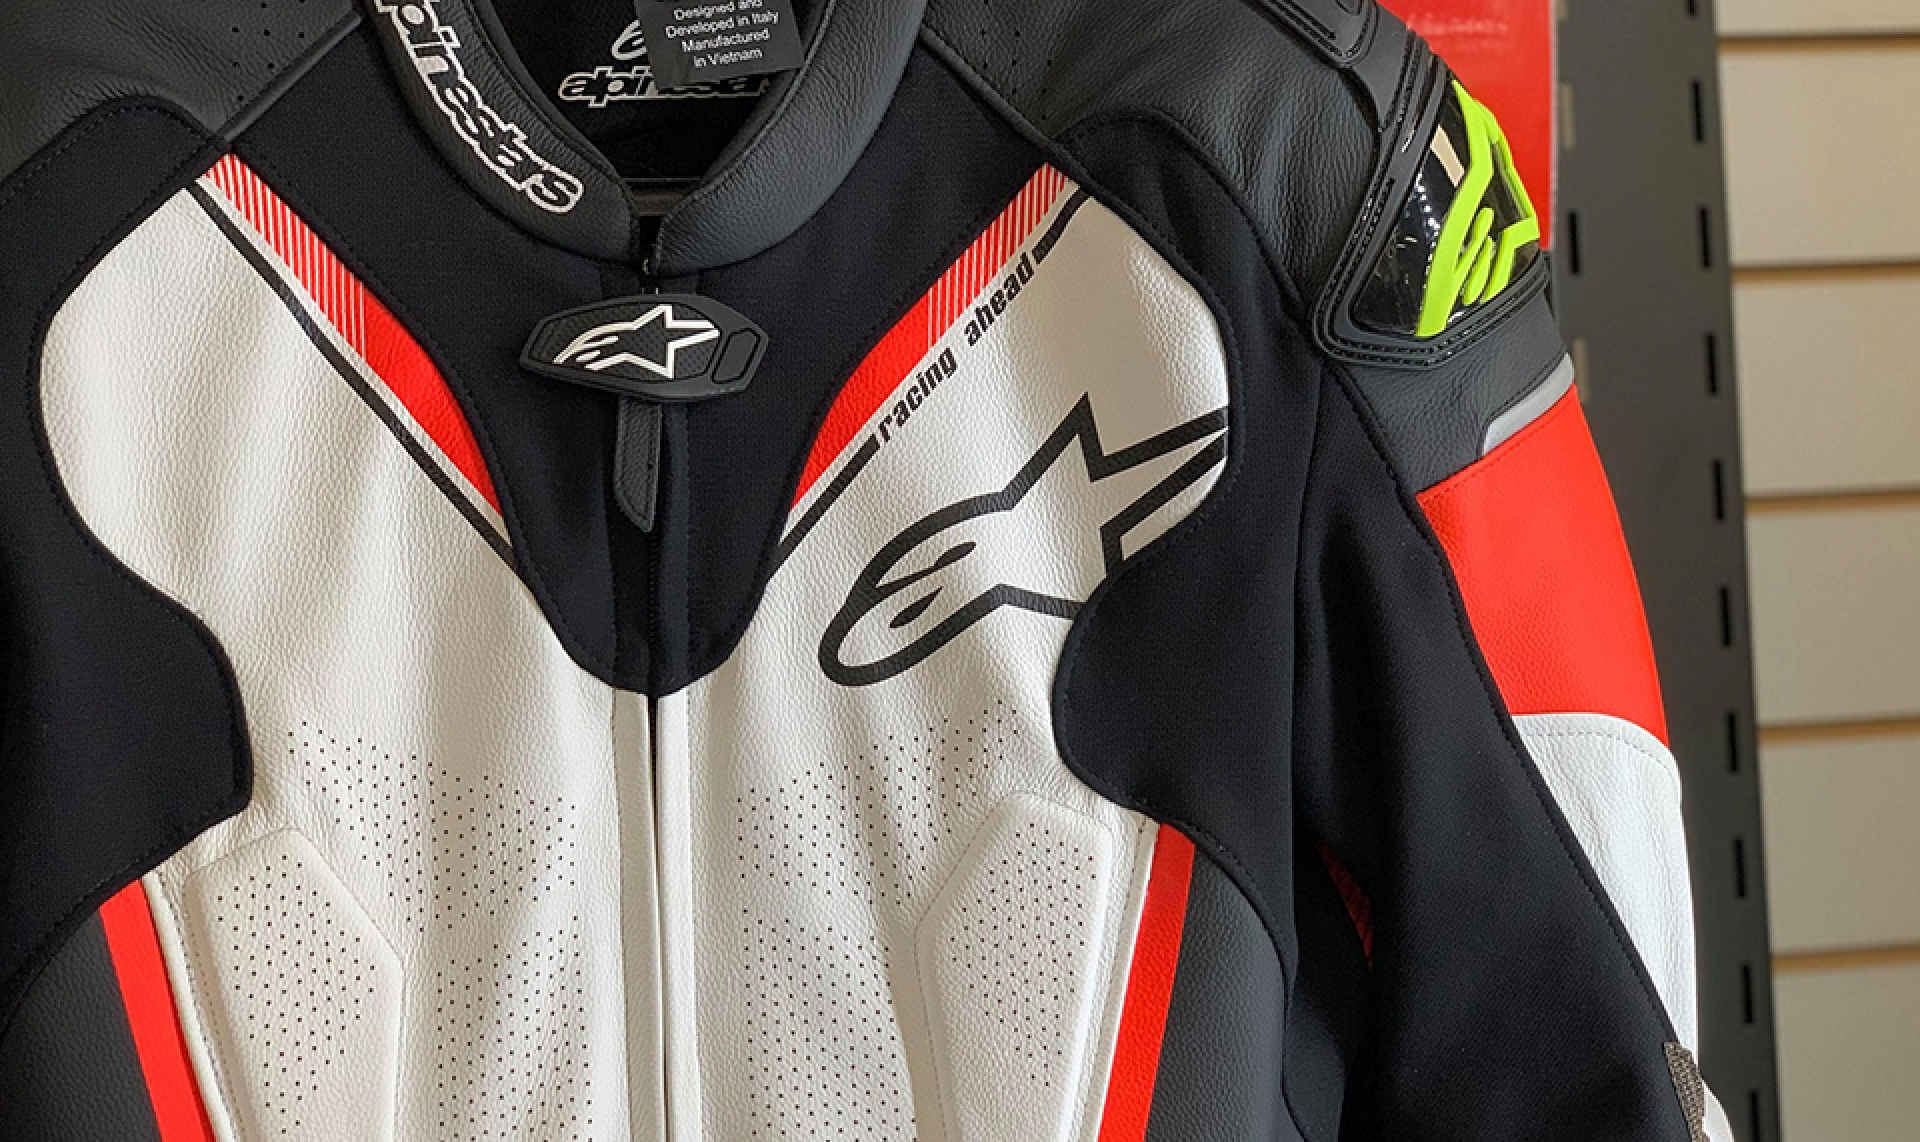 Motorbike clothing South Wales